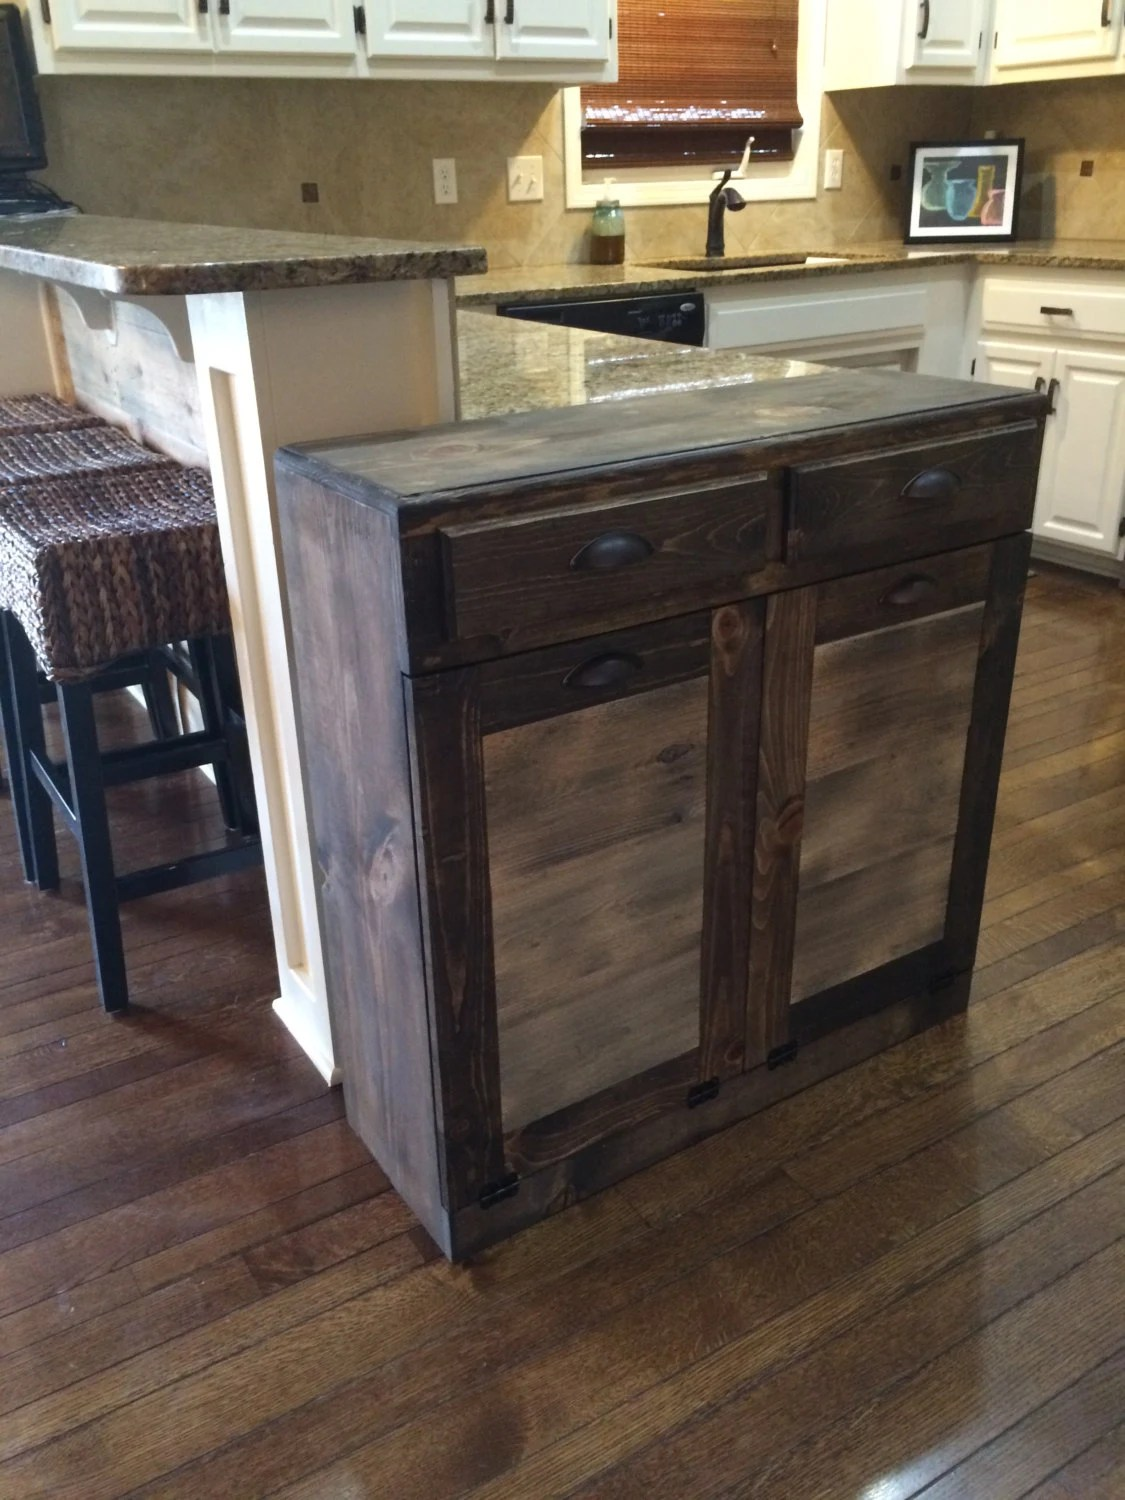 13 gallon kitchen trash can light fixture double tilt bin recycle rustic out by ...